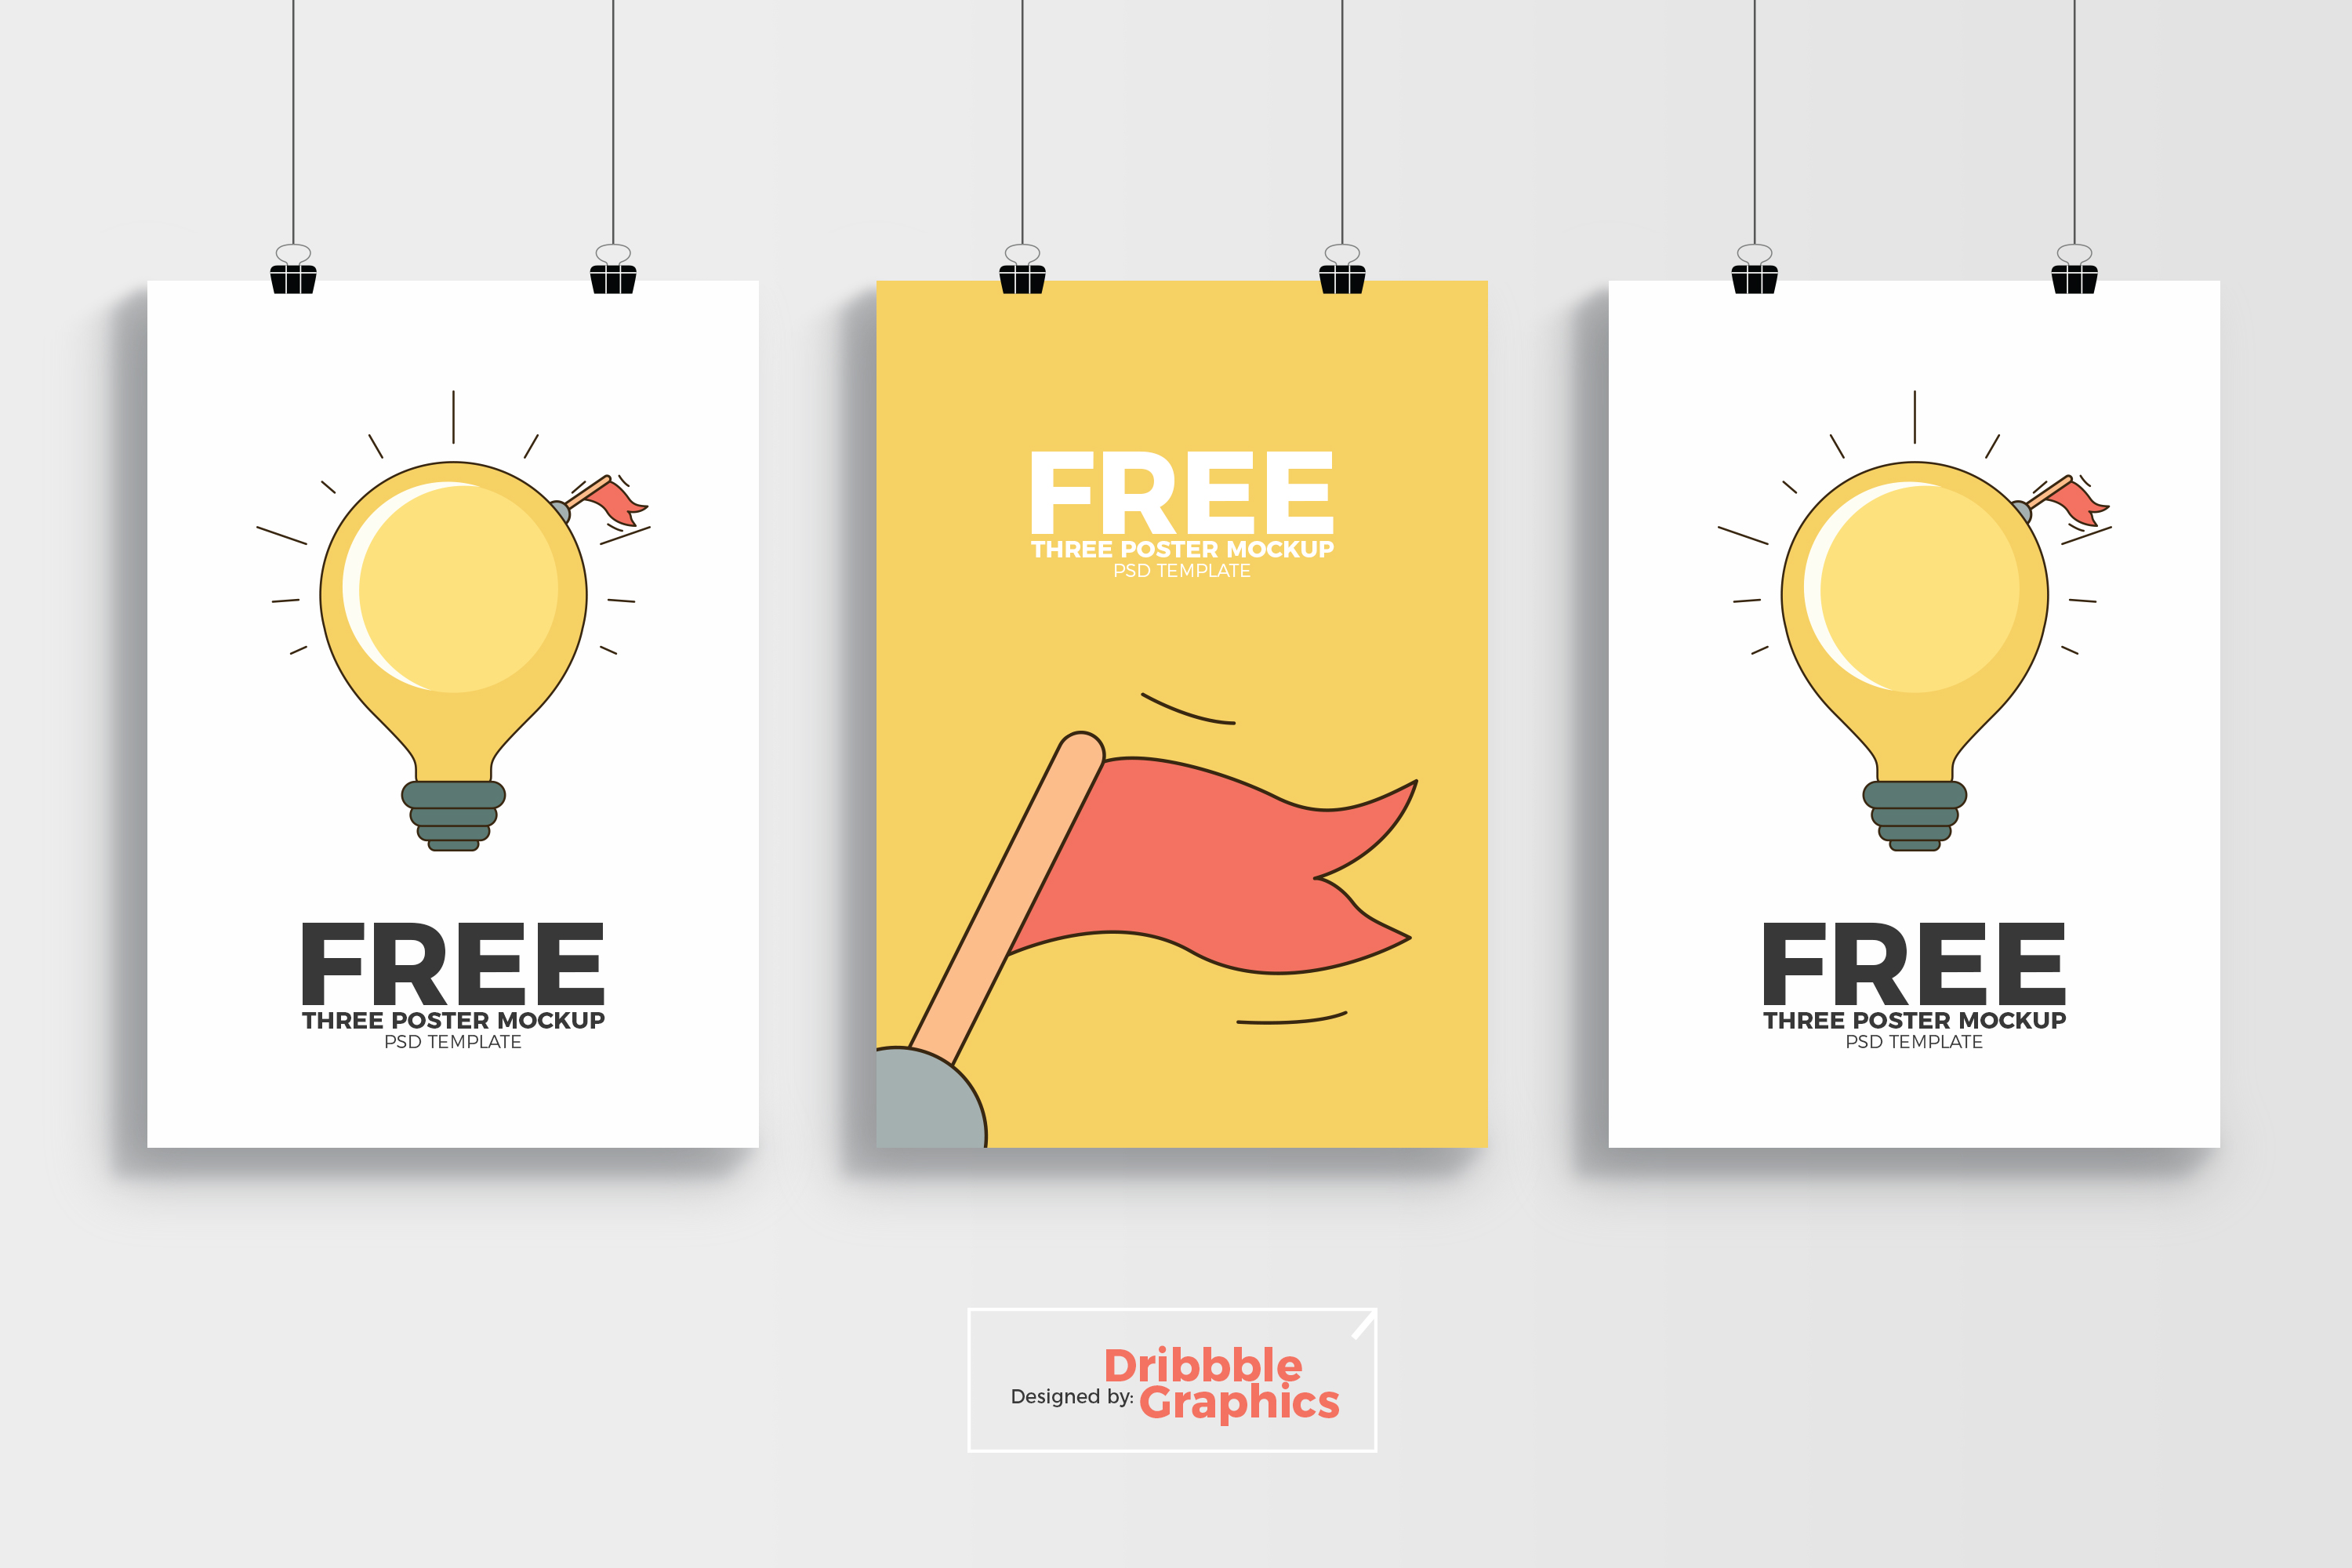 Free-3-Poster-Mockup-PSD-Template